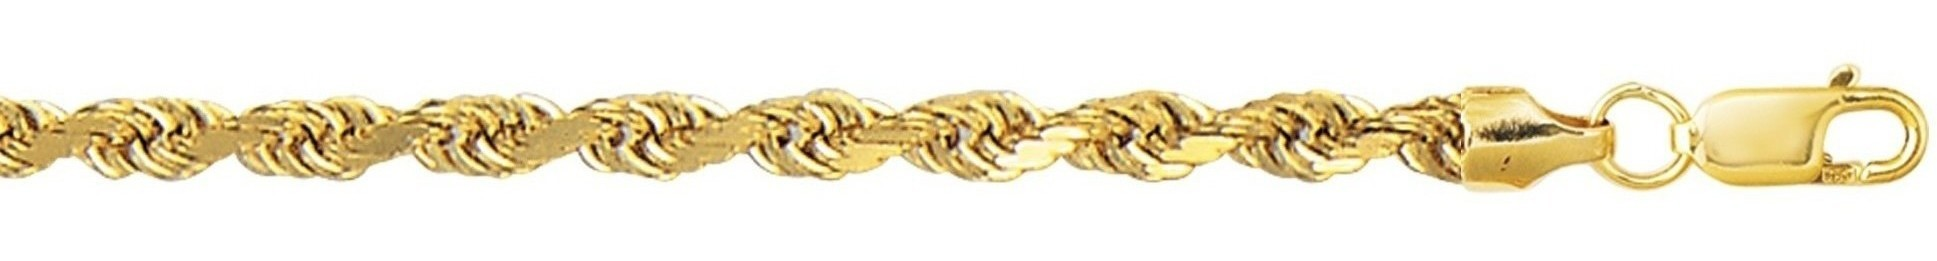 "20"" 10K Yellow Gold 4.0mm (1/6"") Polished Diamond Cut Hollow Sparkle Rope Chain w/ Lobster Clasp"